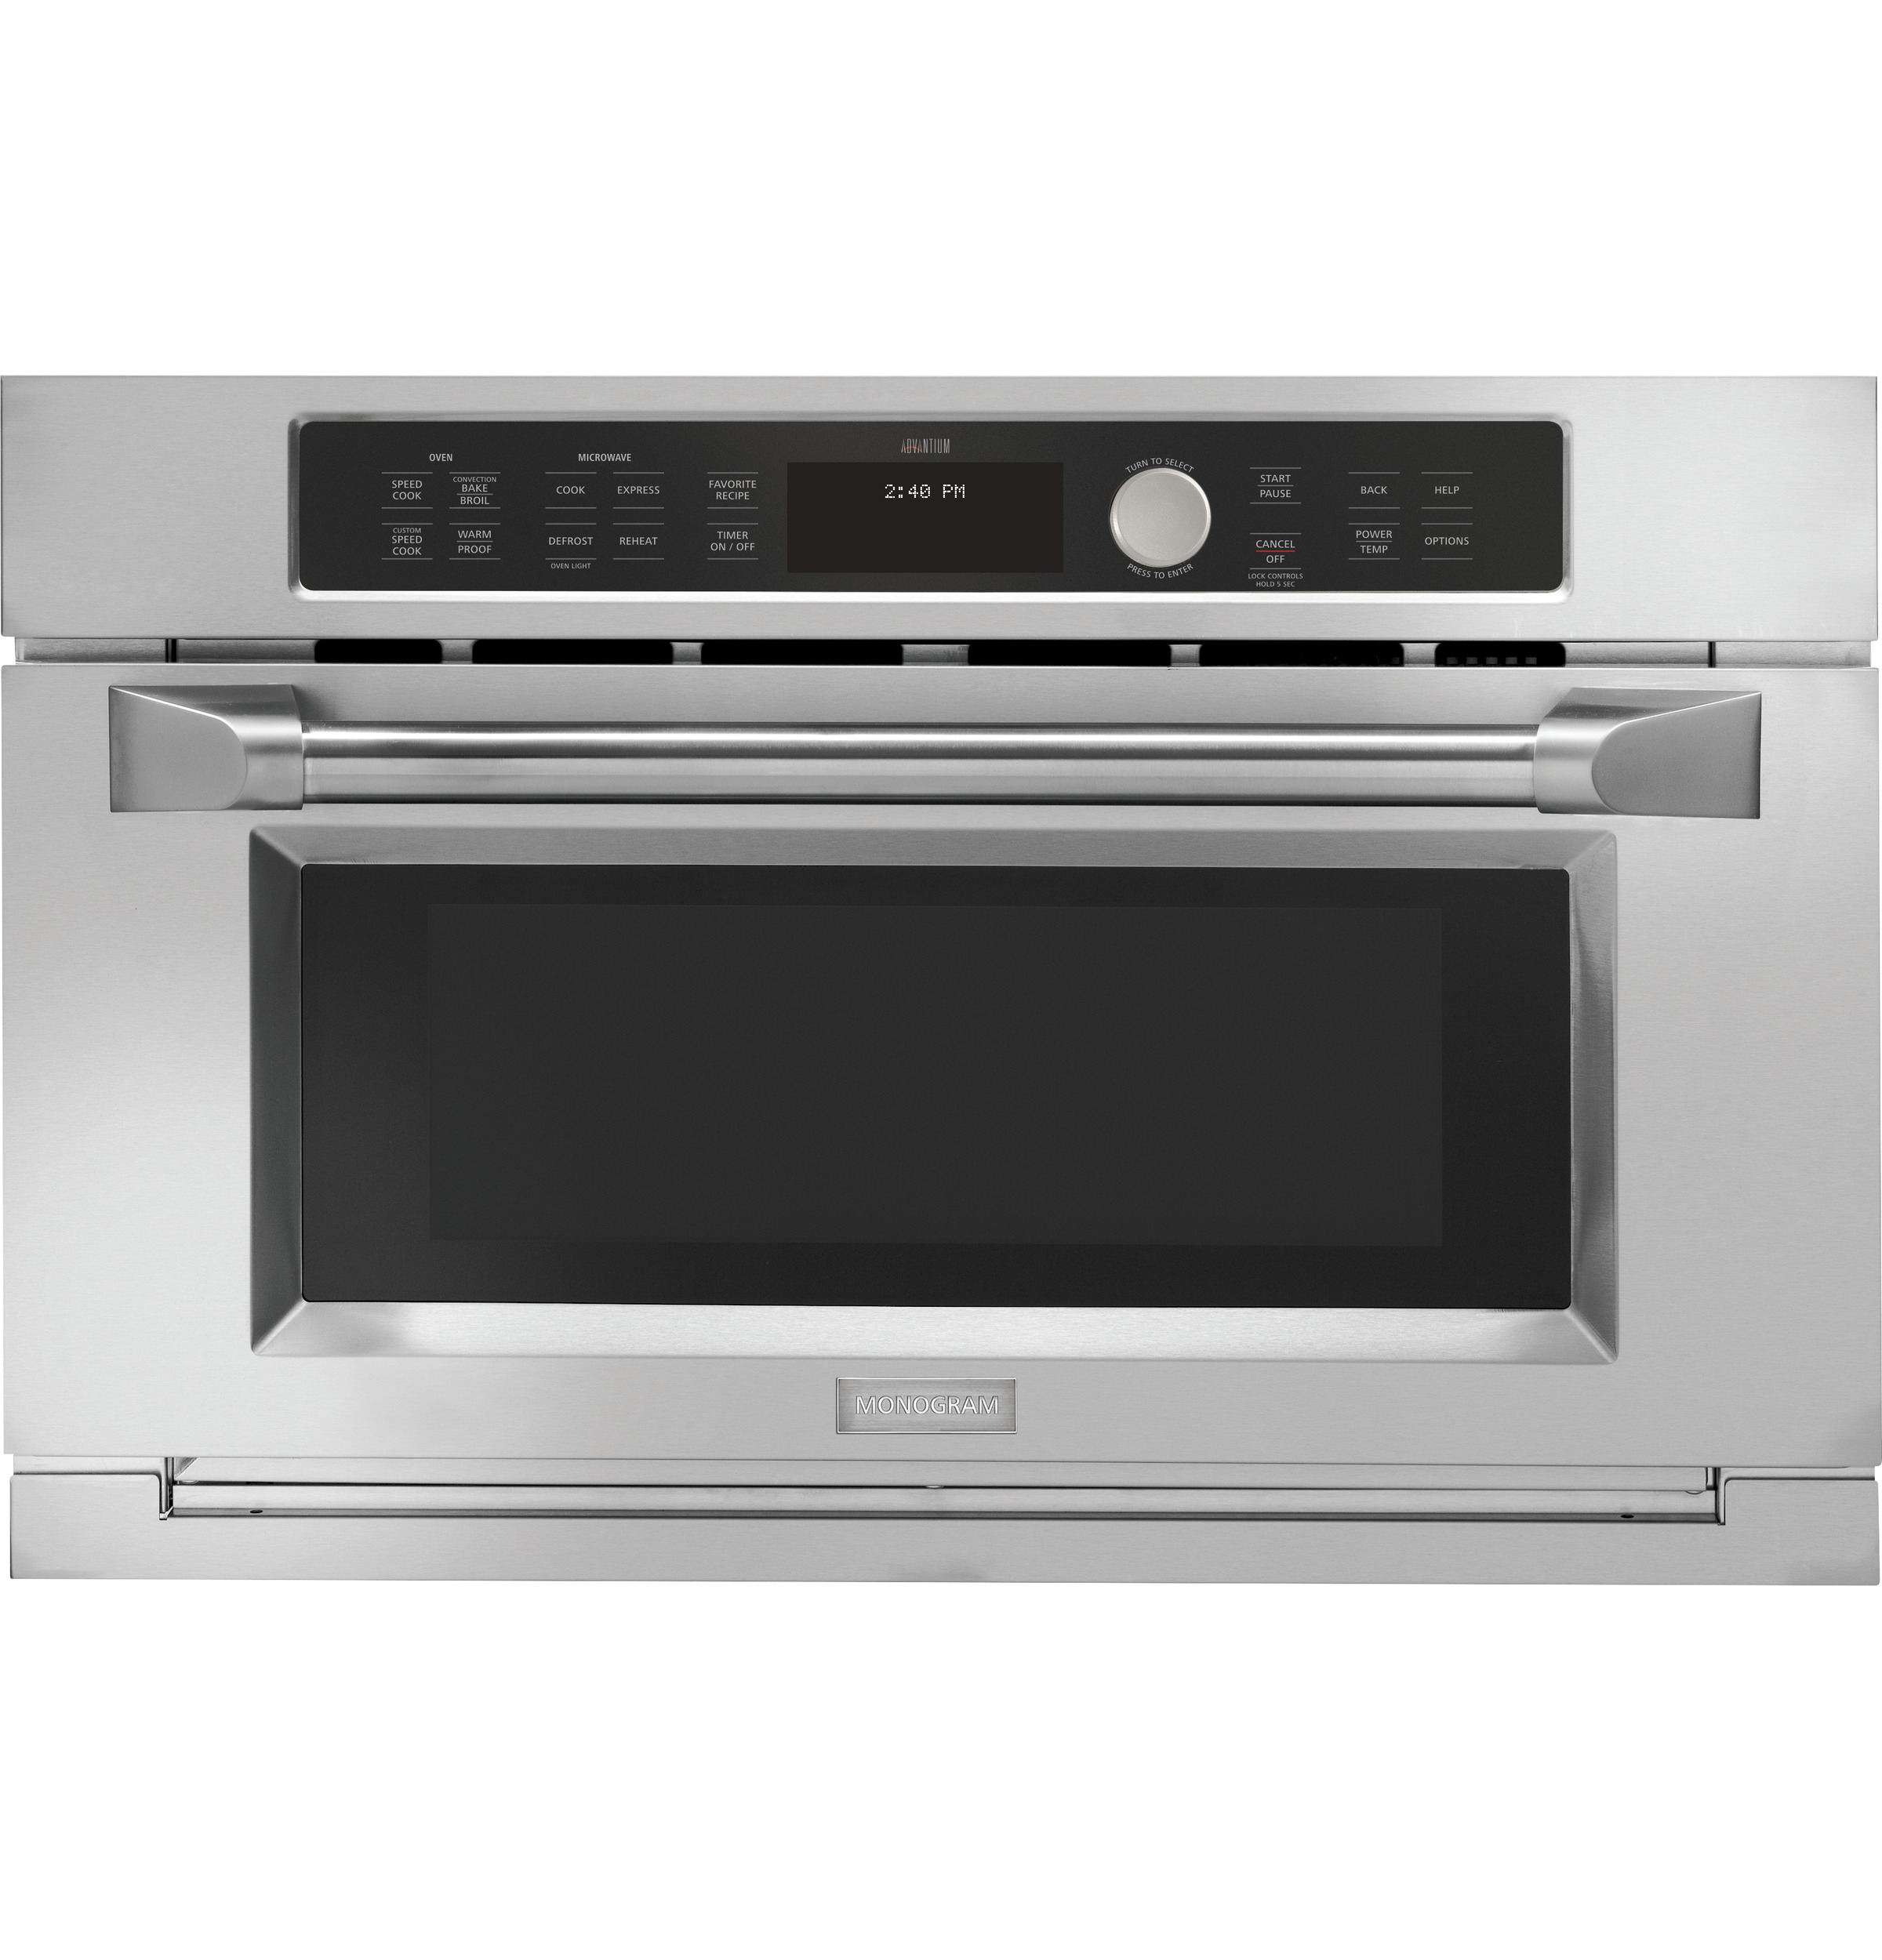 Monogram Monogram Built-In Oven with Advantium® Speedcook Technology- 240V